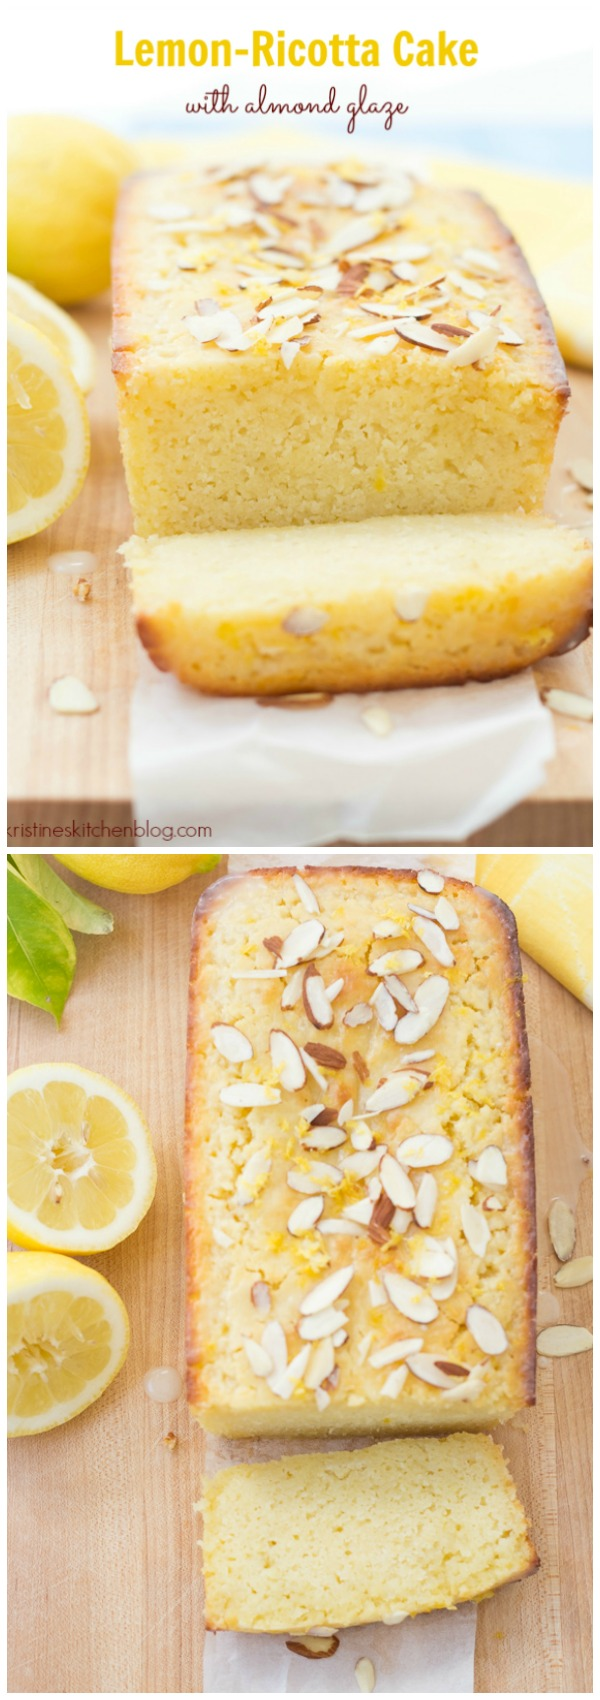 Lemon Ricotta Cake with Almond Glaze. This incredibly moist cake is bursting with bright citrus flavor!